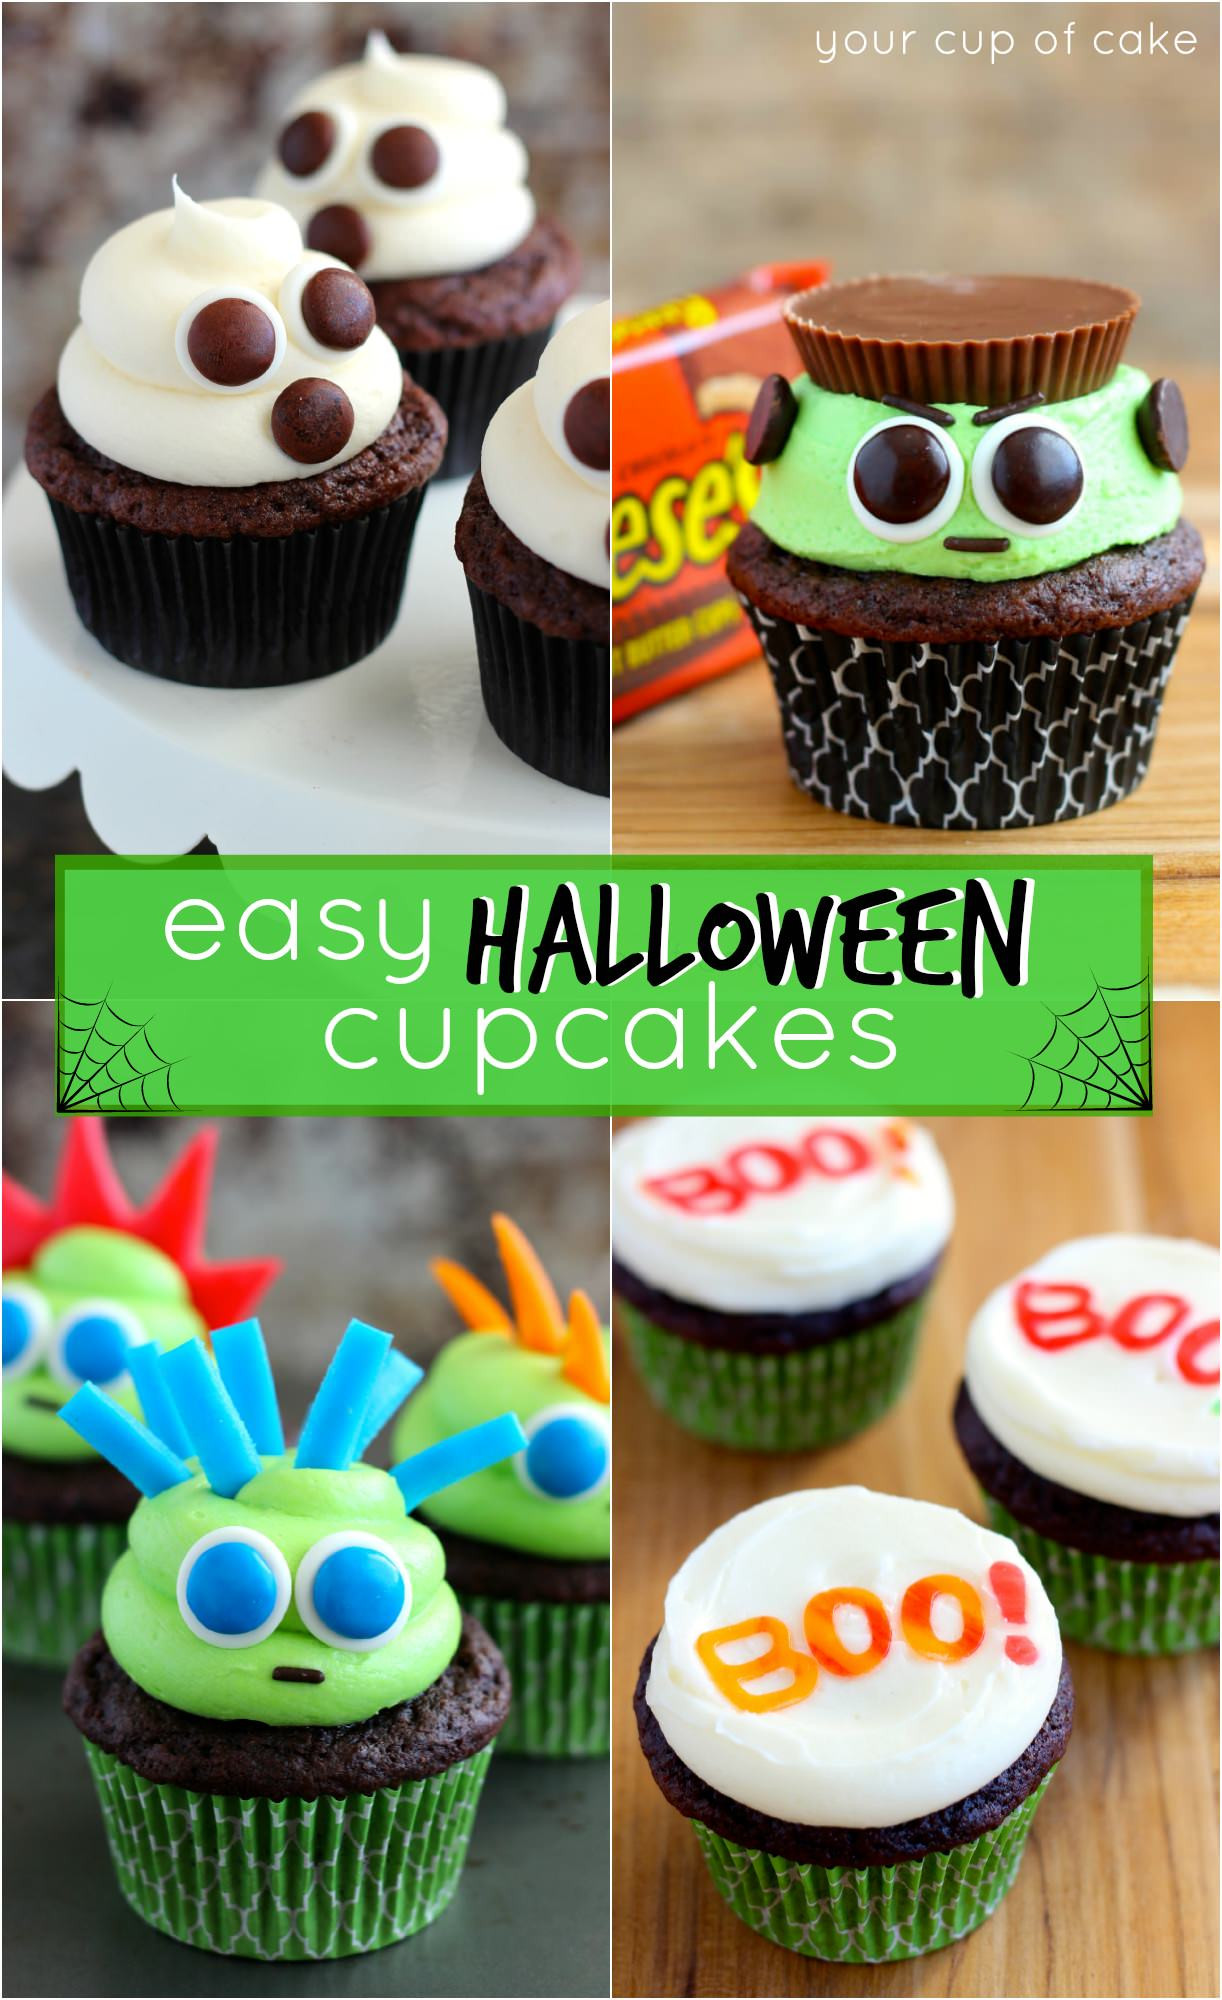 Simple Halloween Cakes  Easy Halloween Cupcake Ideas Your Cup of Cake